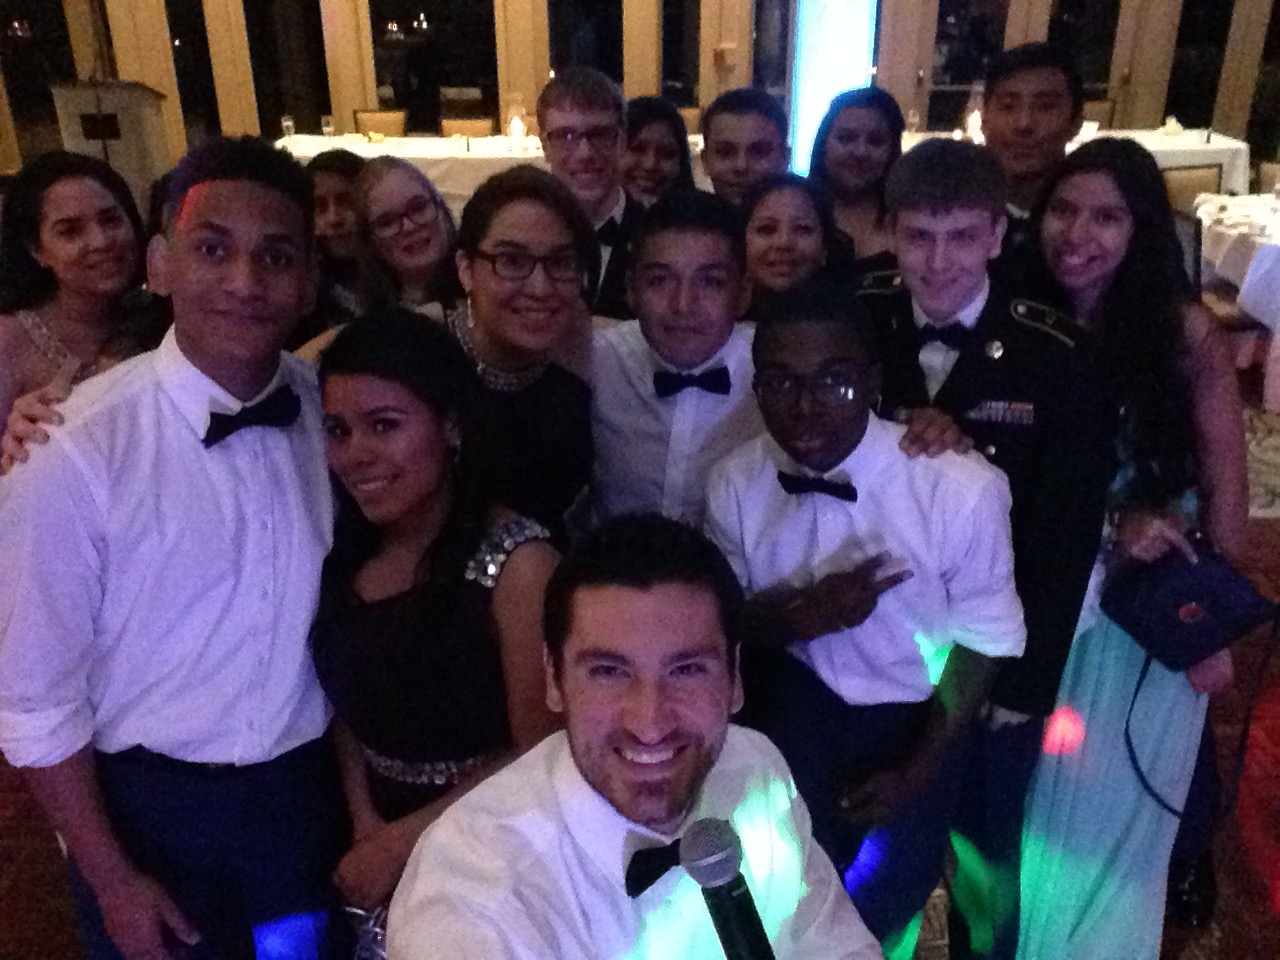 Military Ball Selfie